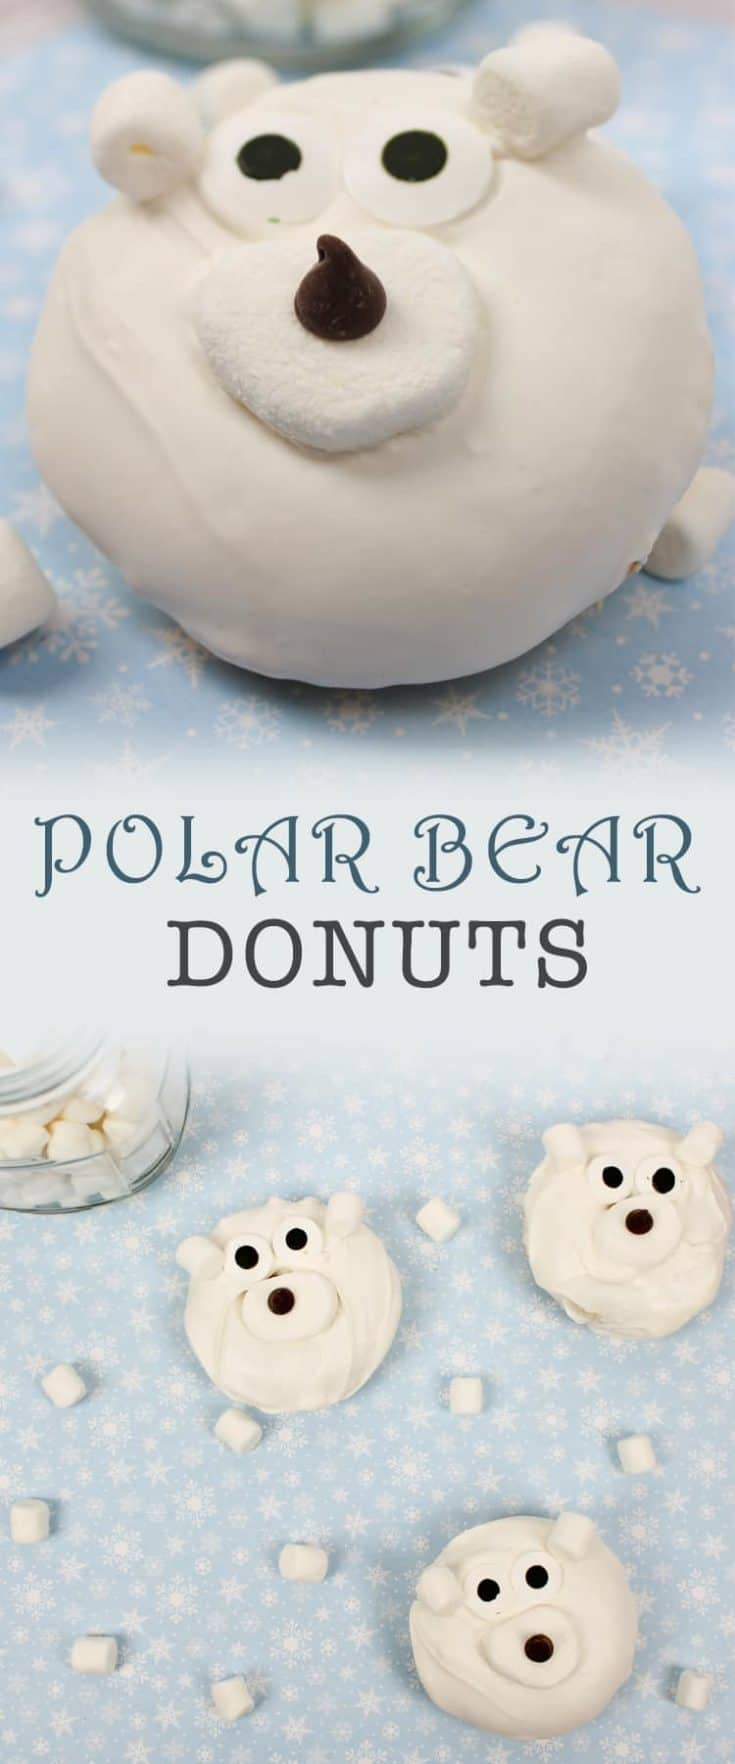 This Polar Bear Donuts recipe uses a box cake mix for ease. They will be the highlight of a school or activity holiday party, or bagged for exchanges #donuts #christmas